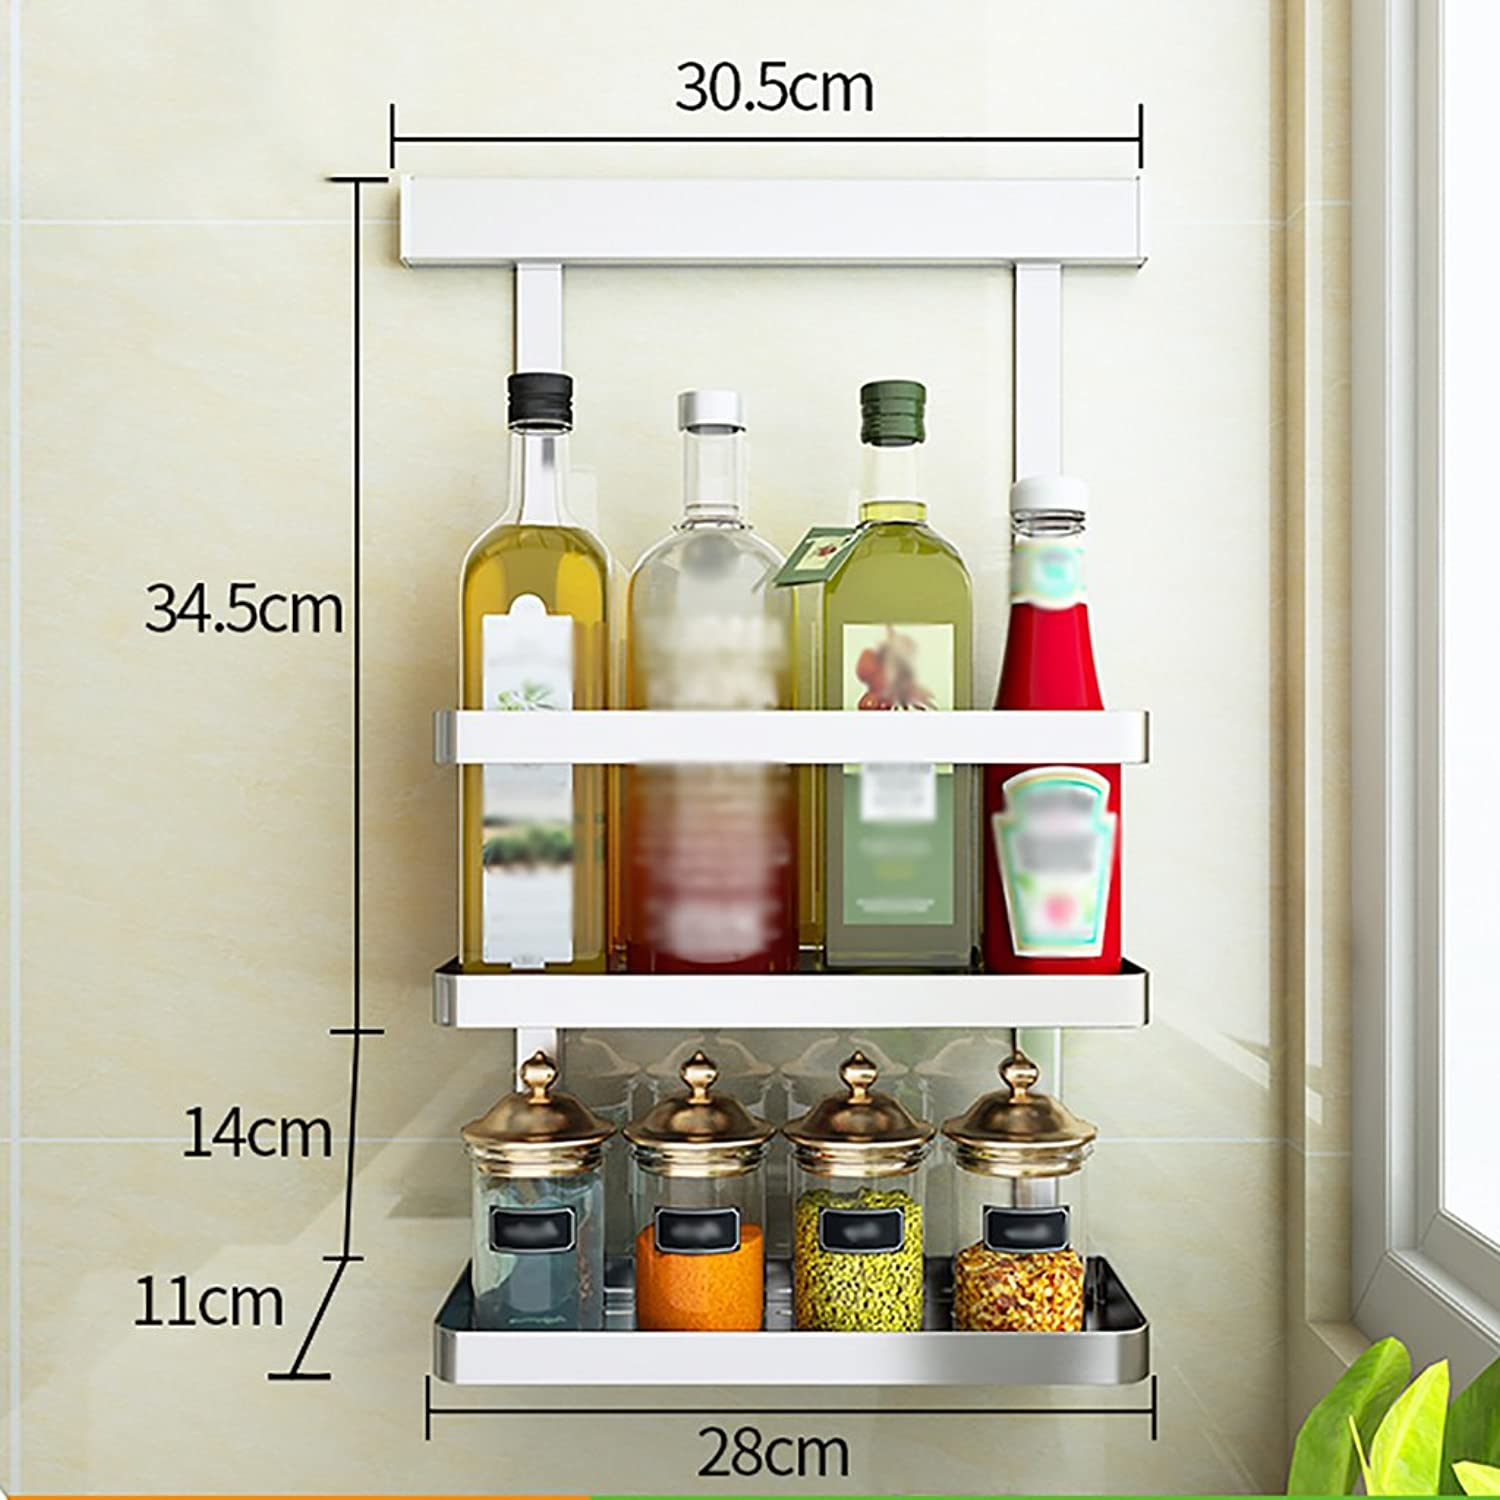 RFJJAL No Drilling 304 Stainless Steel Kitchen Racks Wall Hanging Storage Organize Shelf (Size   E)